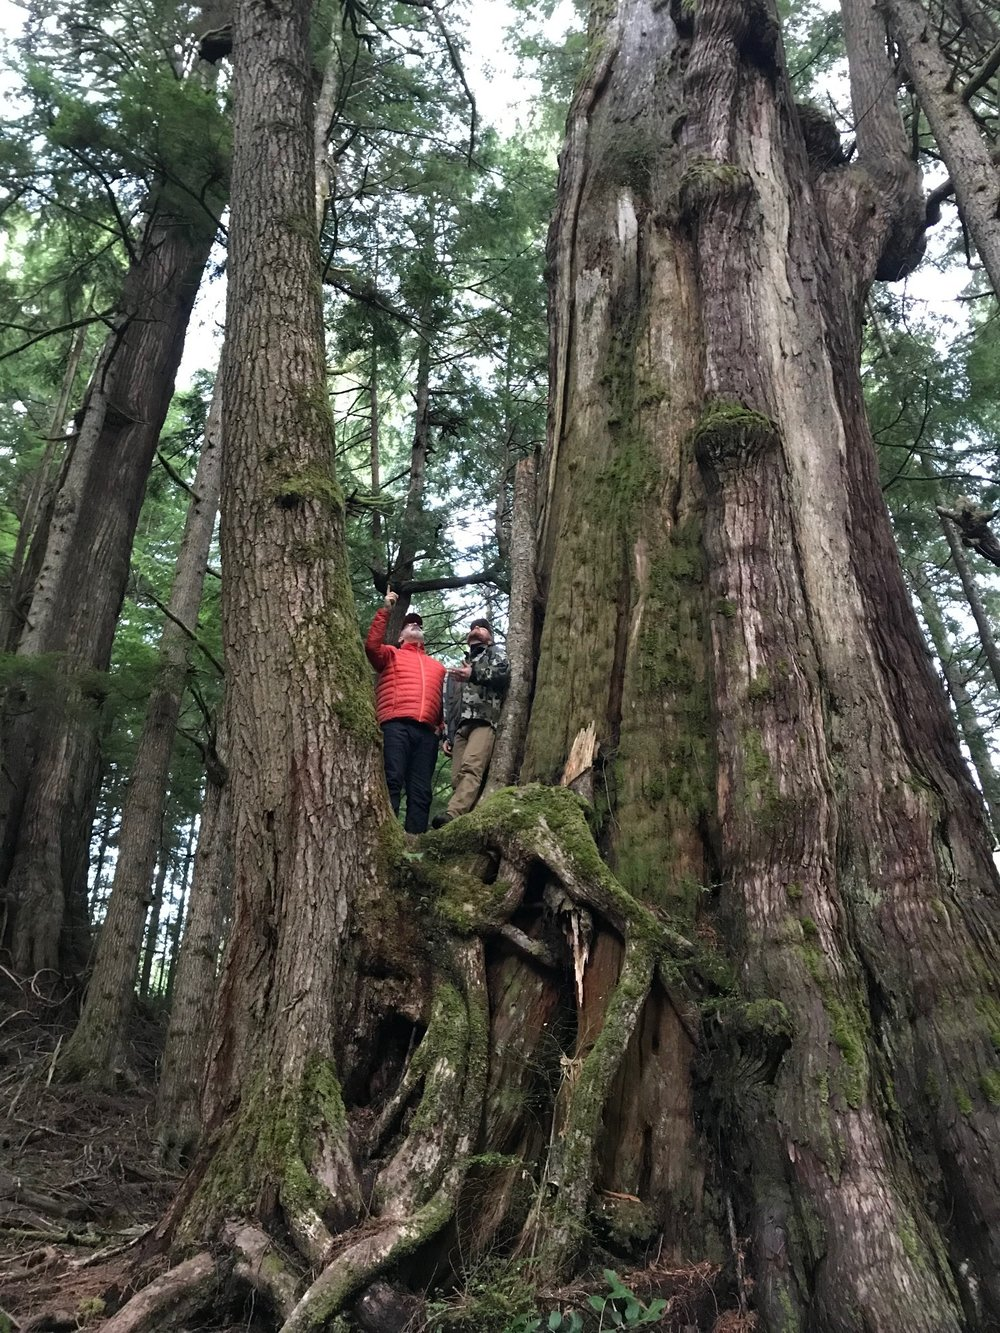 A few forest giants remain at Ellsworth Creek preserve, survivors of the logging days and an inspiration for us to understand what this forest should be.